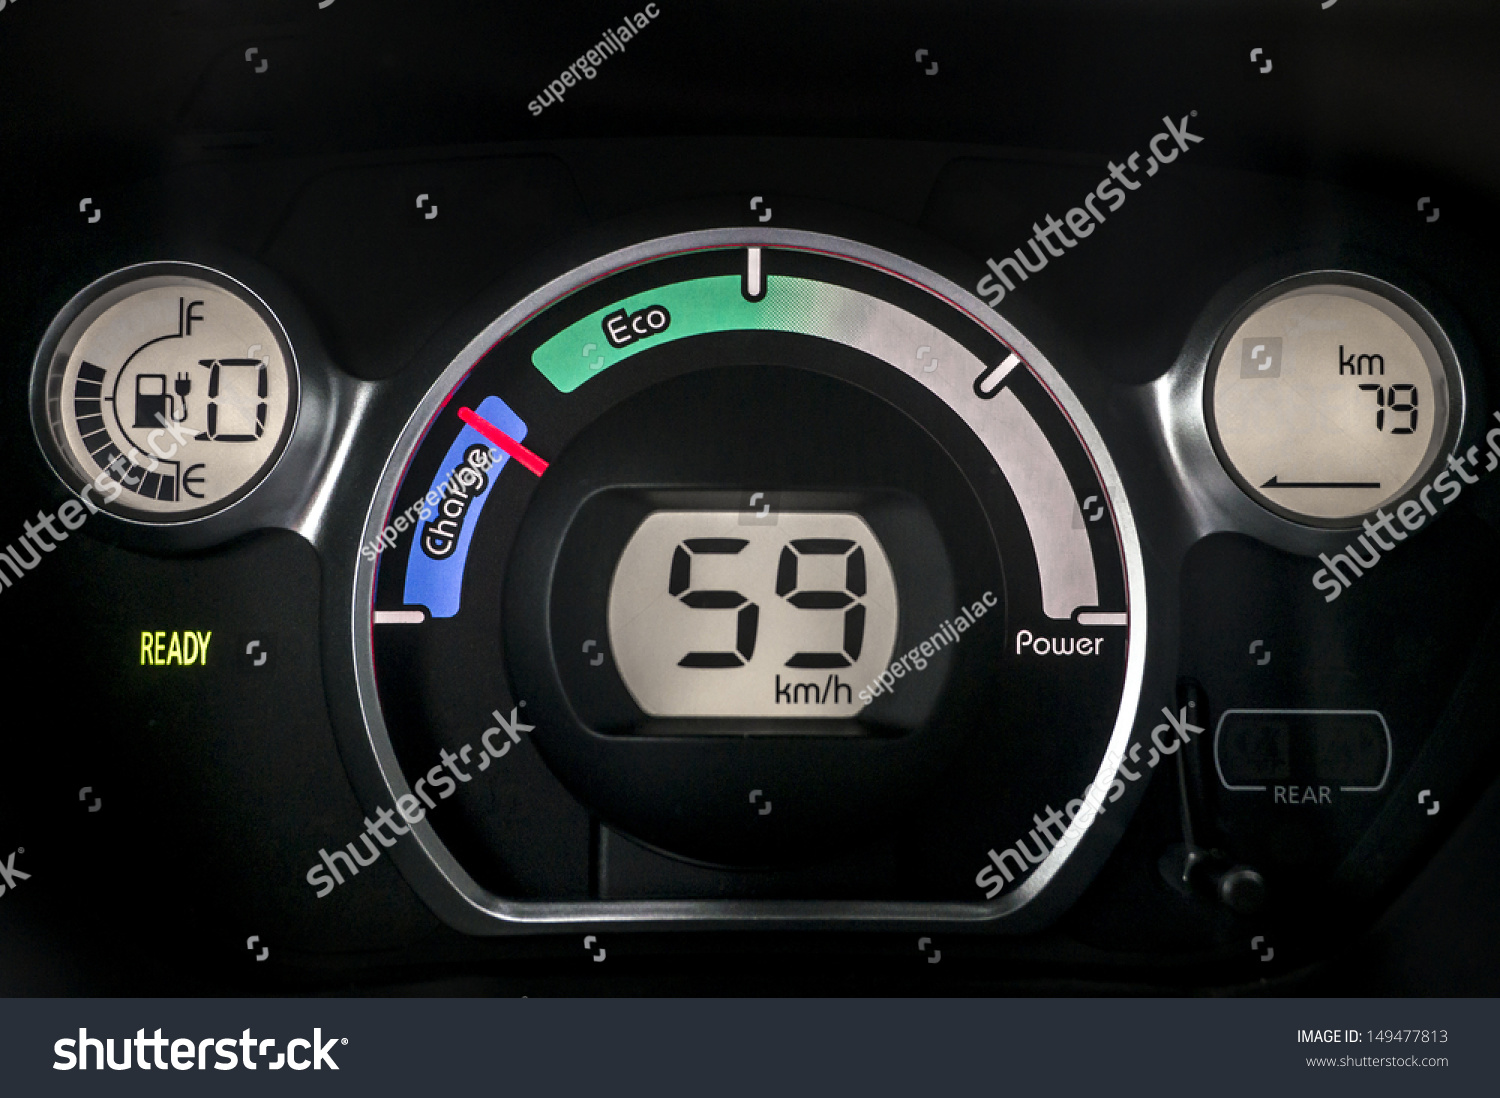 Auto Electric Instrument : Electric car instrument cluster stock photo